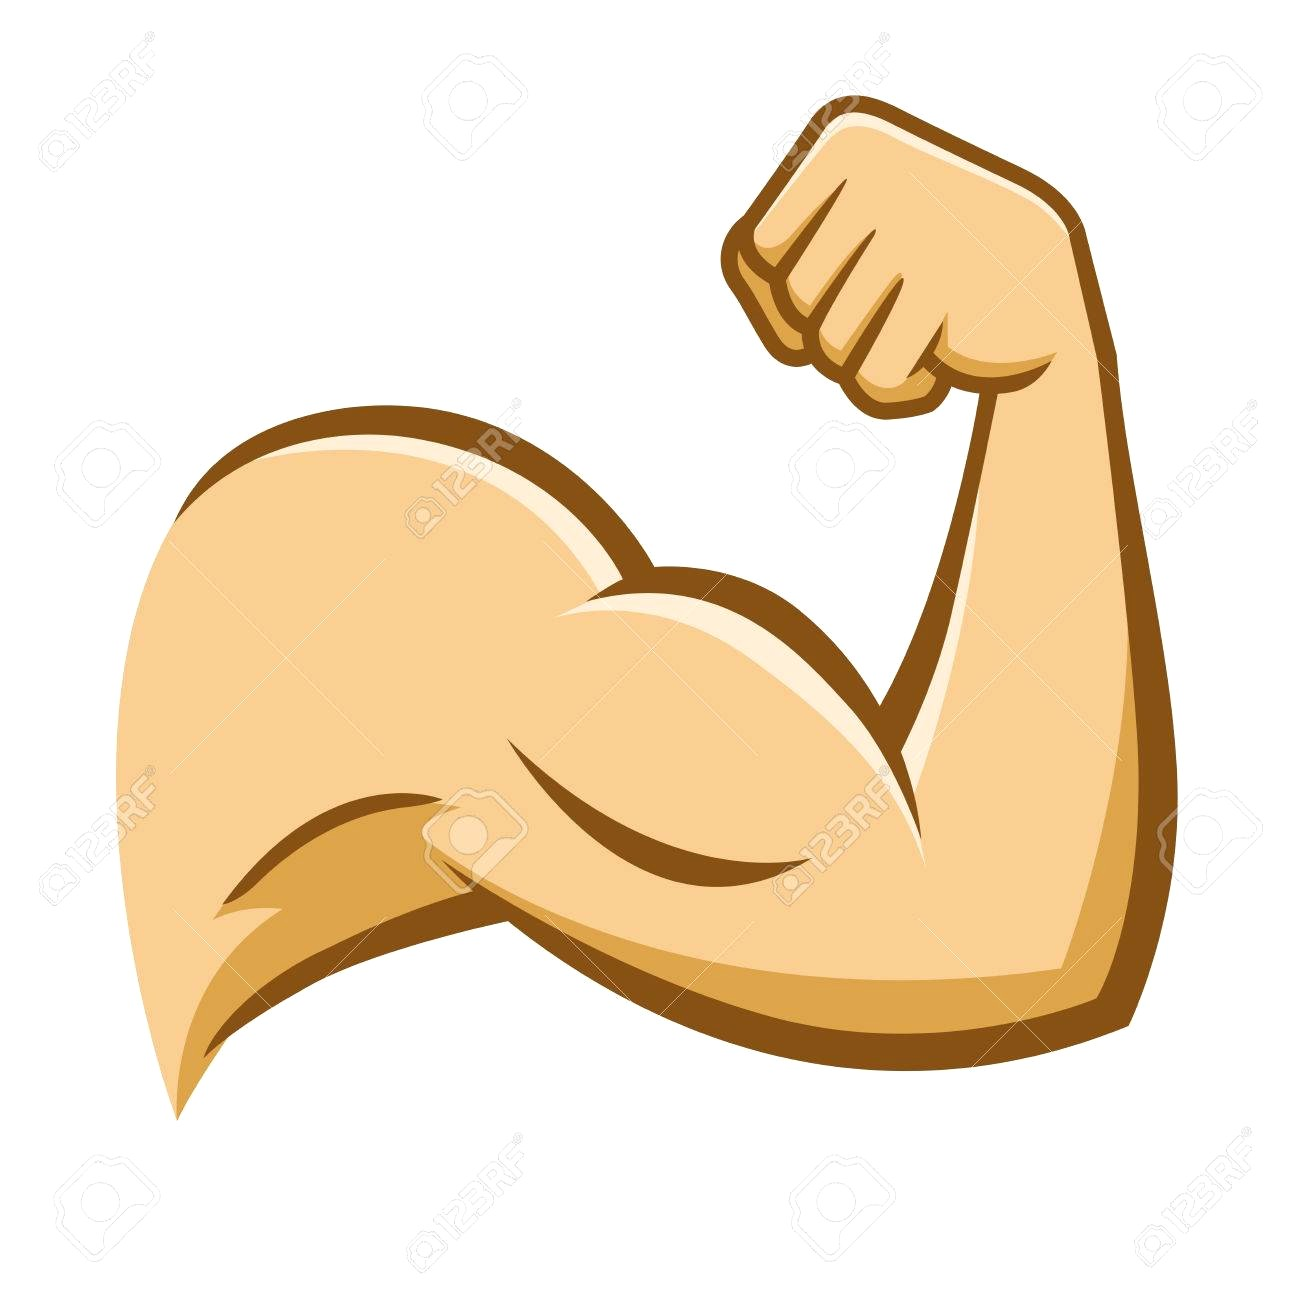 1300x1300 78779128 Vector Stock Of A Strong Muscular Arm On White Background